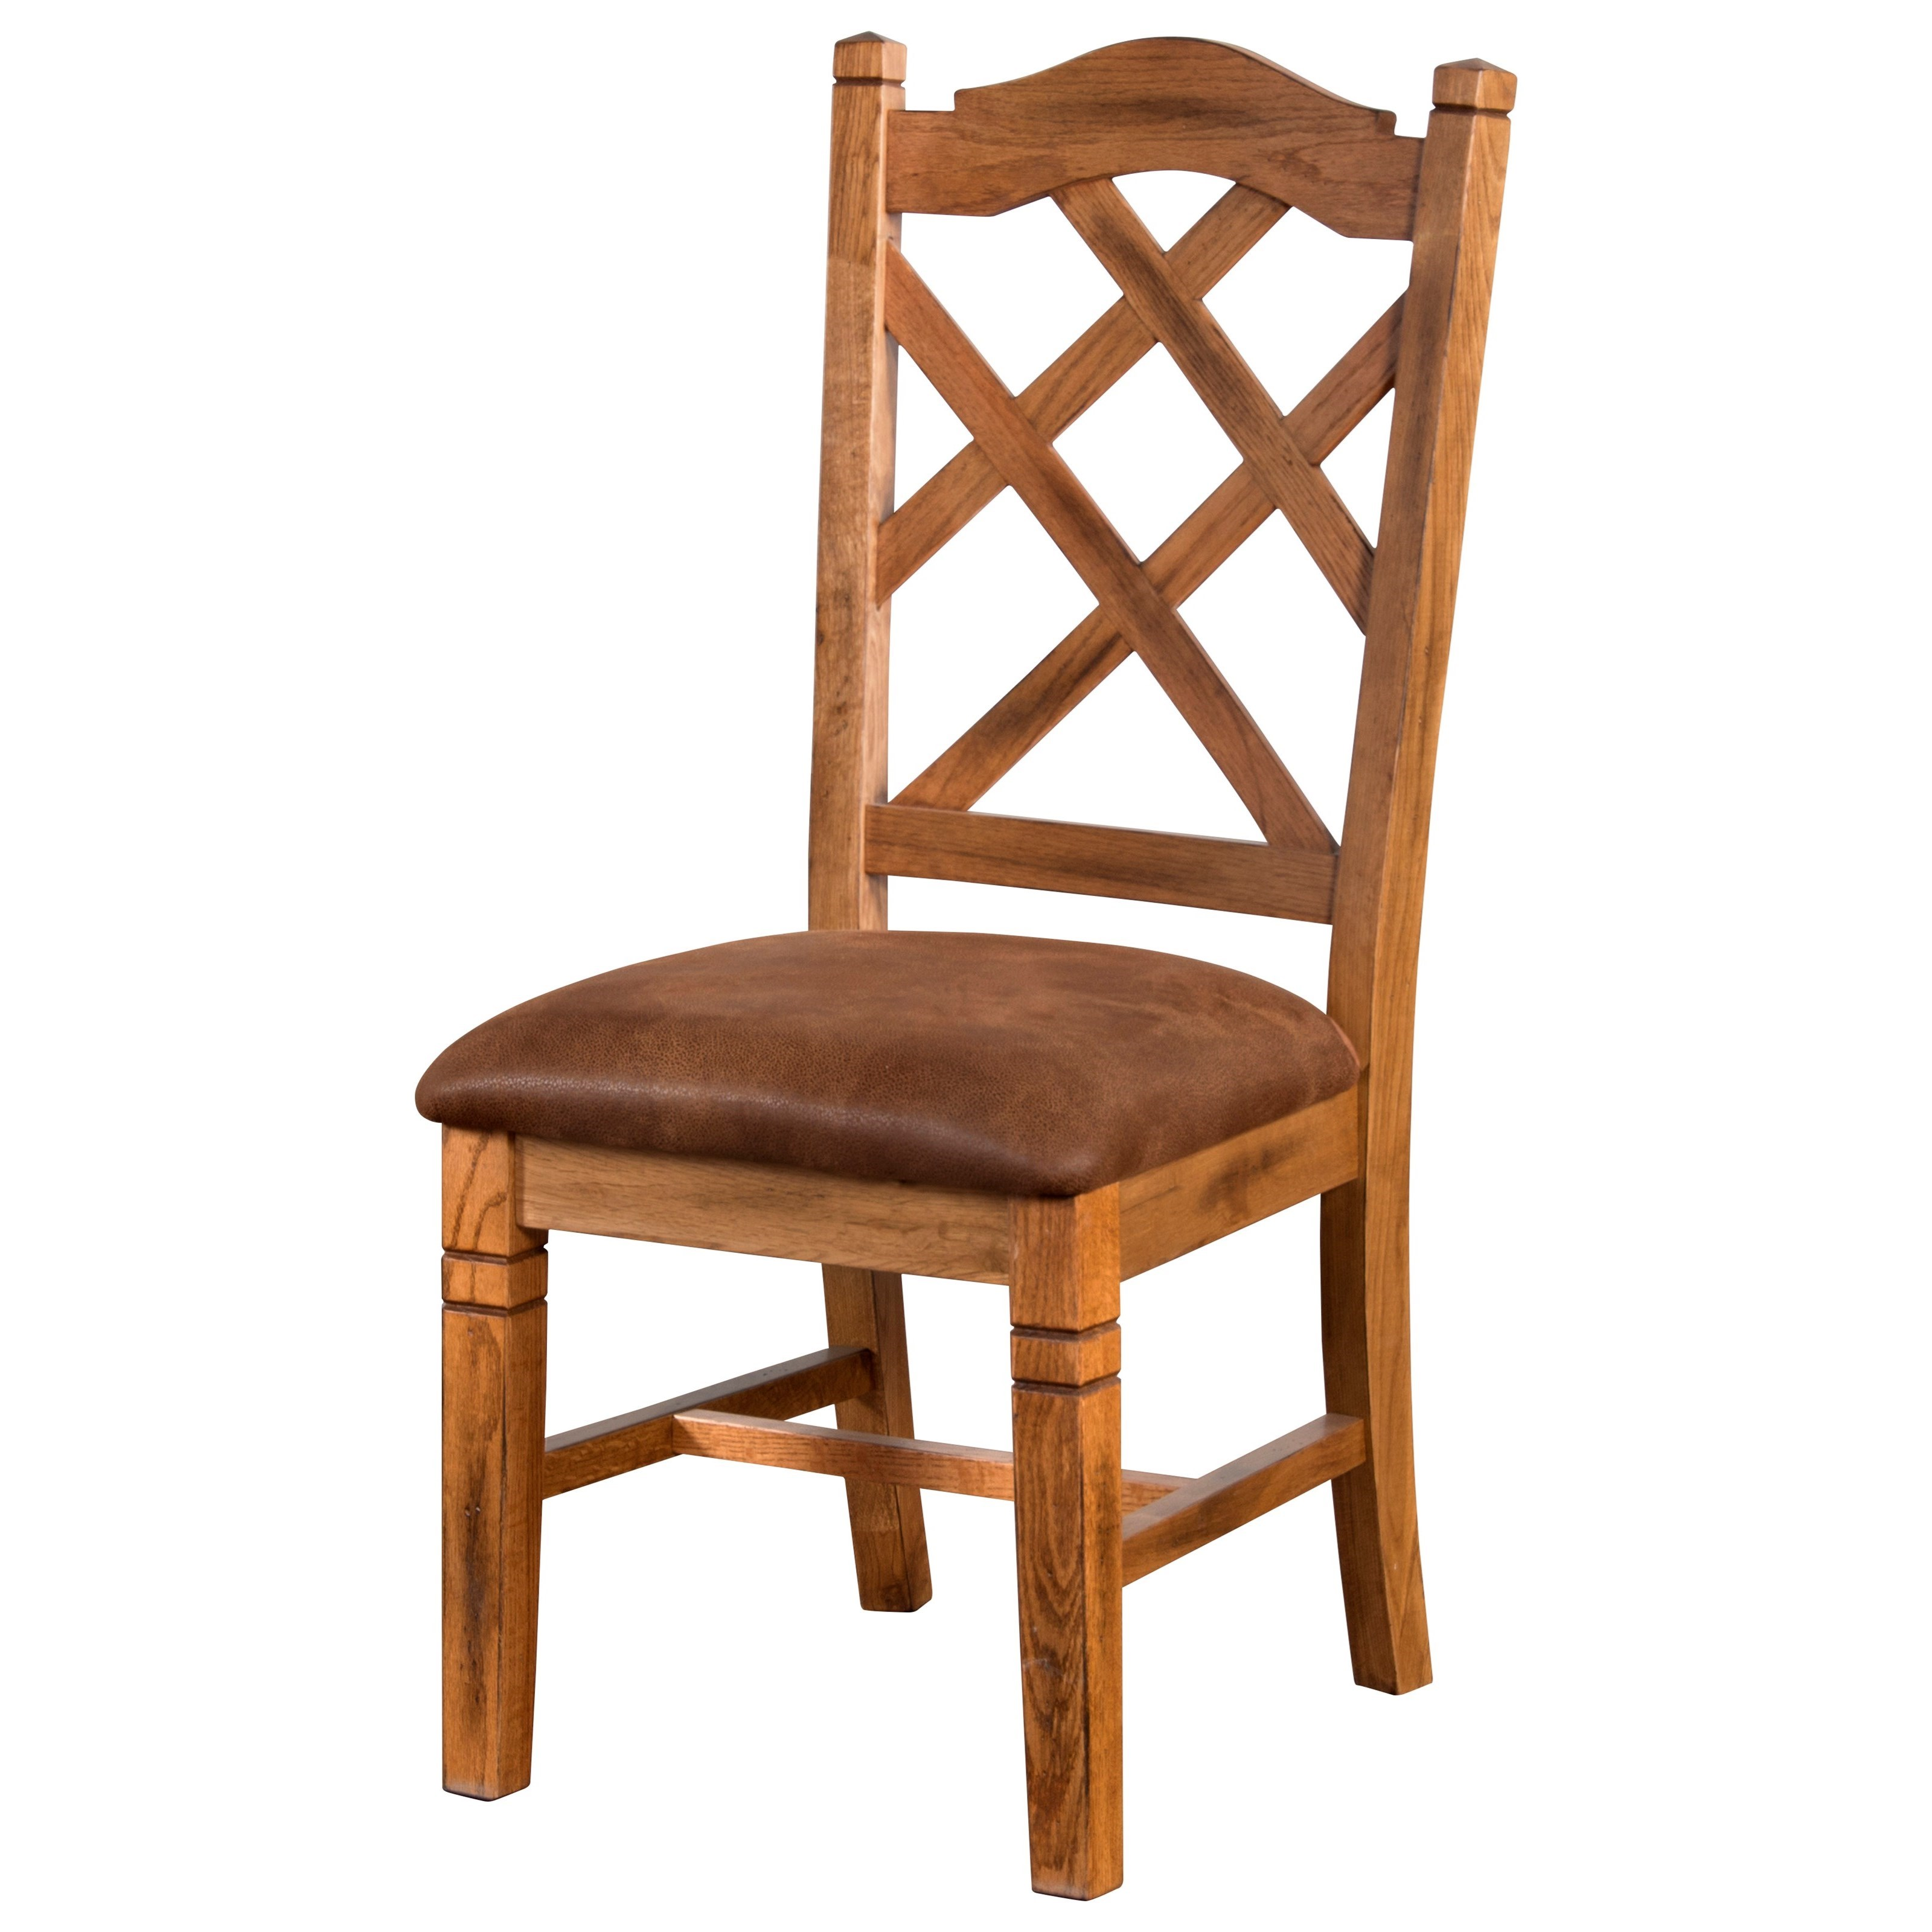 Double Crossback Chair